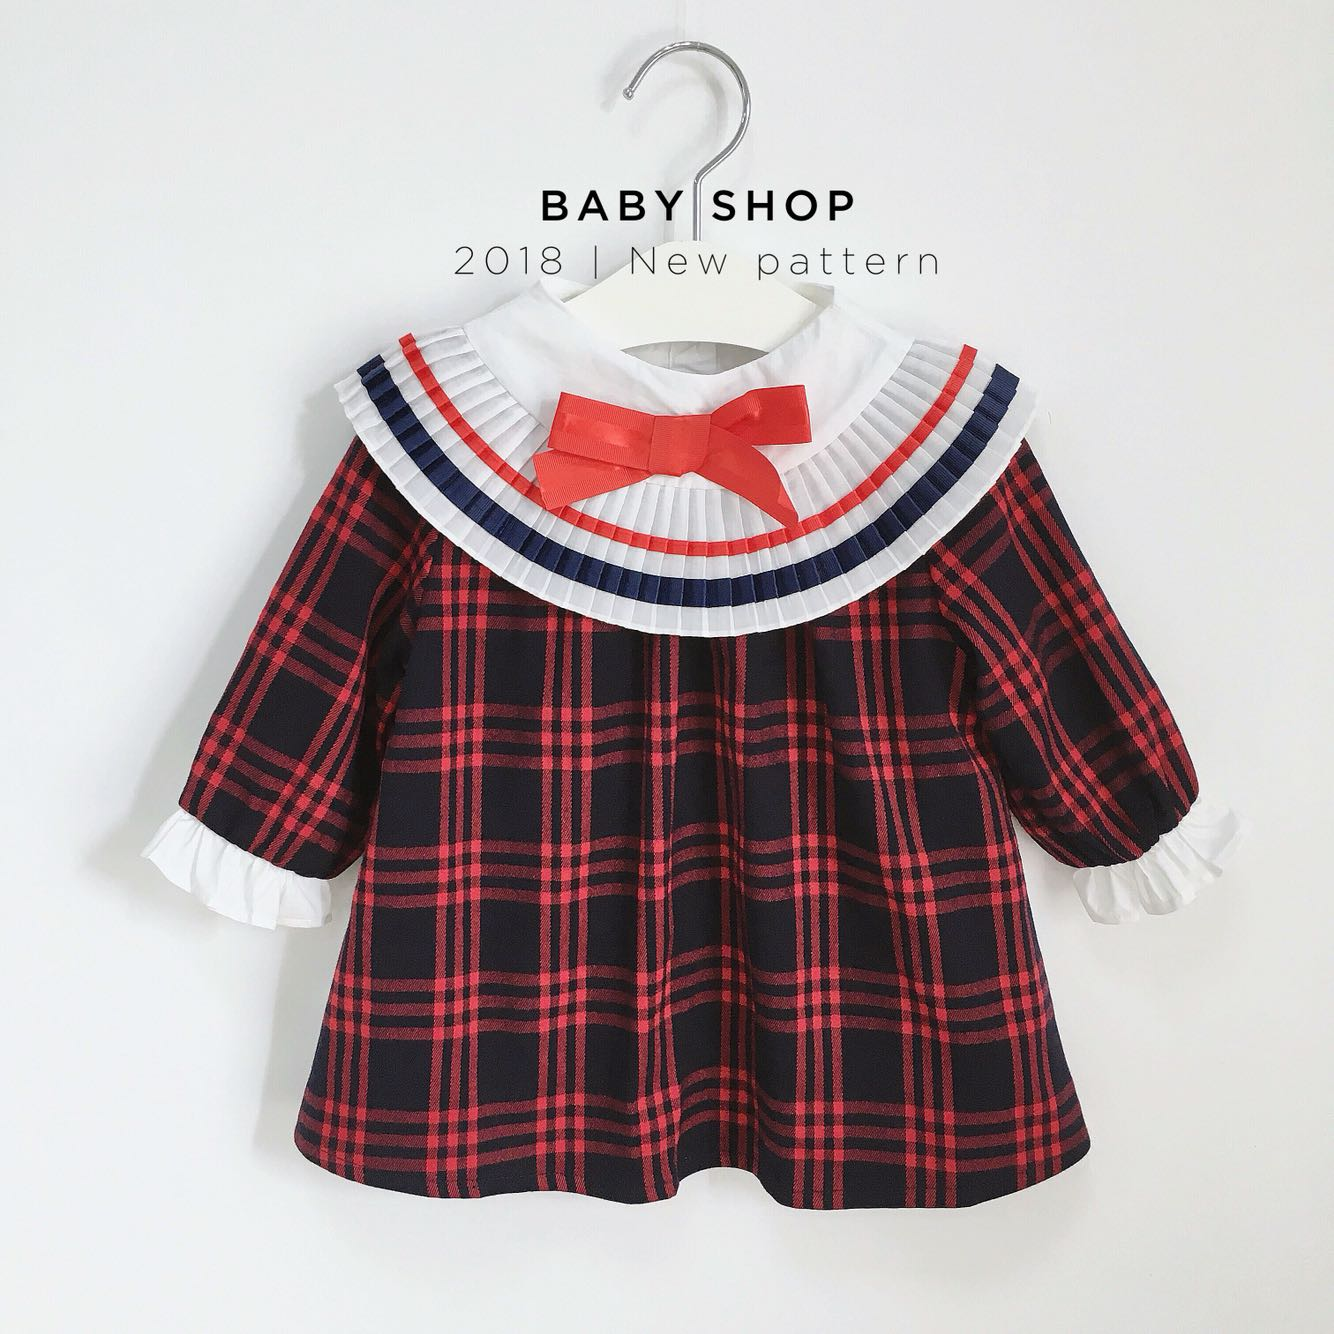 5260 Plaid Ruched Toddler Princess Baby Girls Dresses A-line 2018 Fall Spring Kids Dresses For Girls Wholesale baby girl clothes